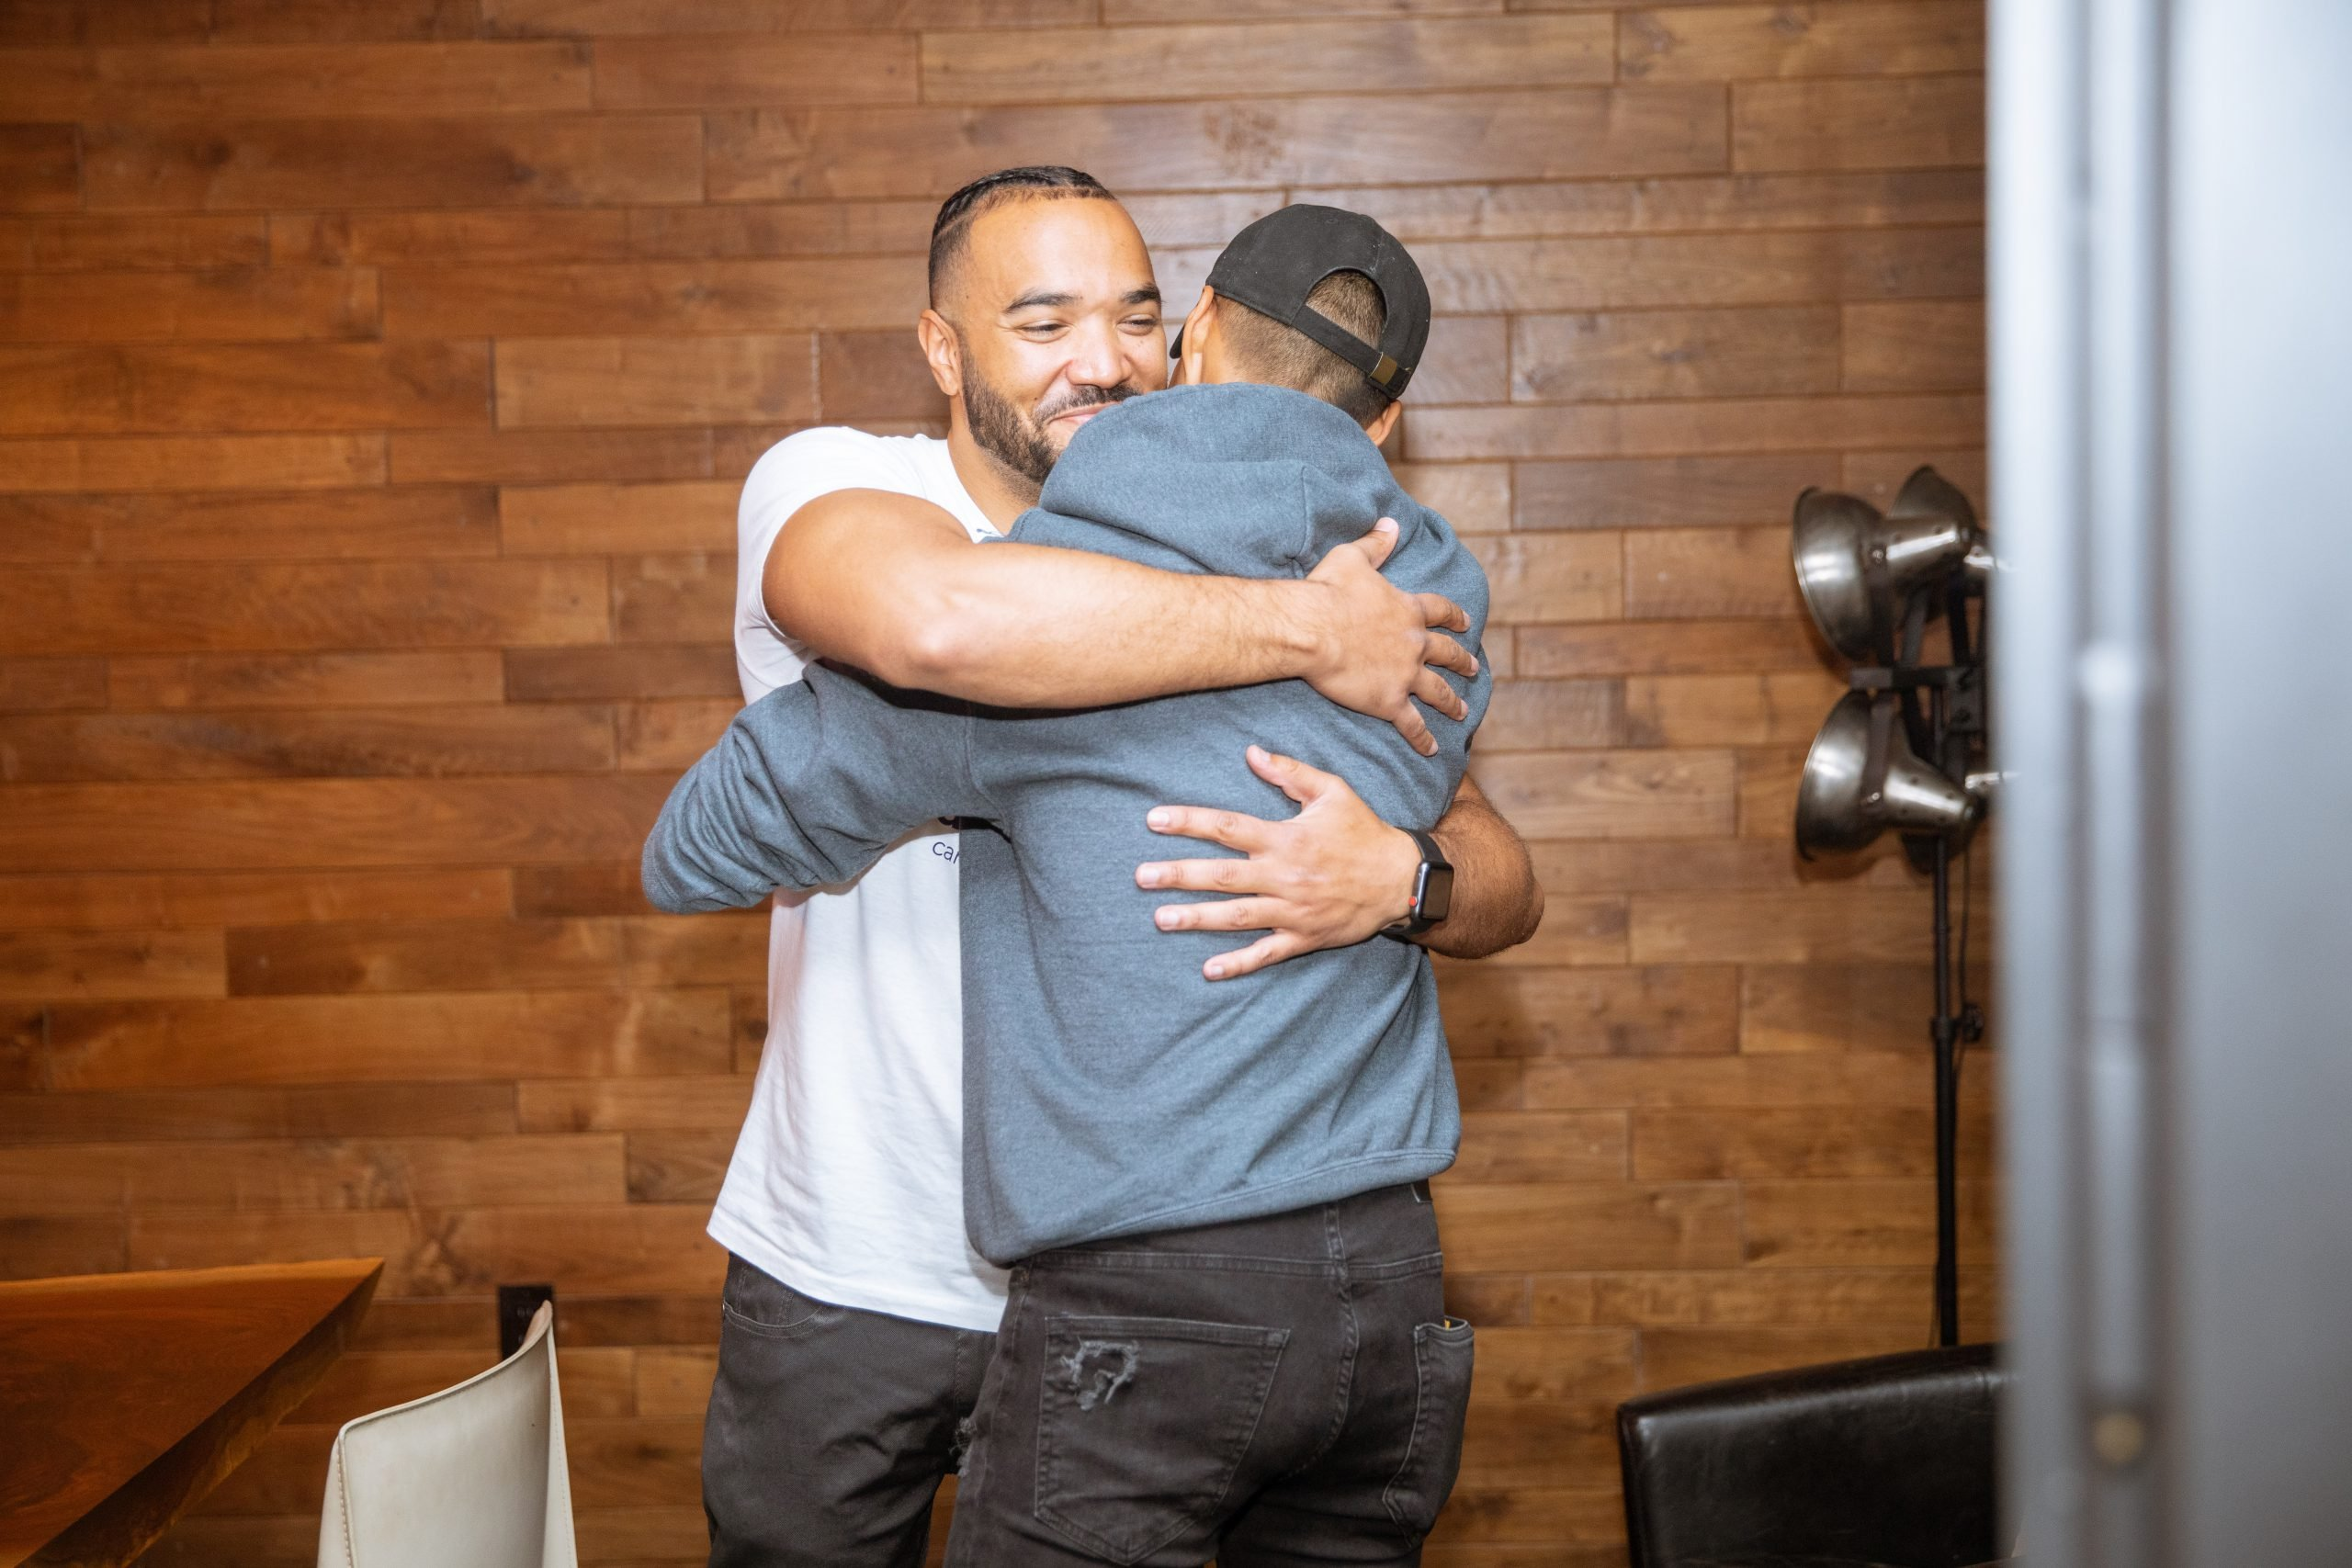 A man wearing a white shirt hugs another man wearing a blue sweatshirt in front of a wooden wall